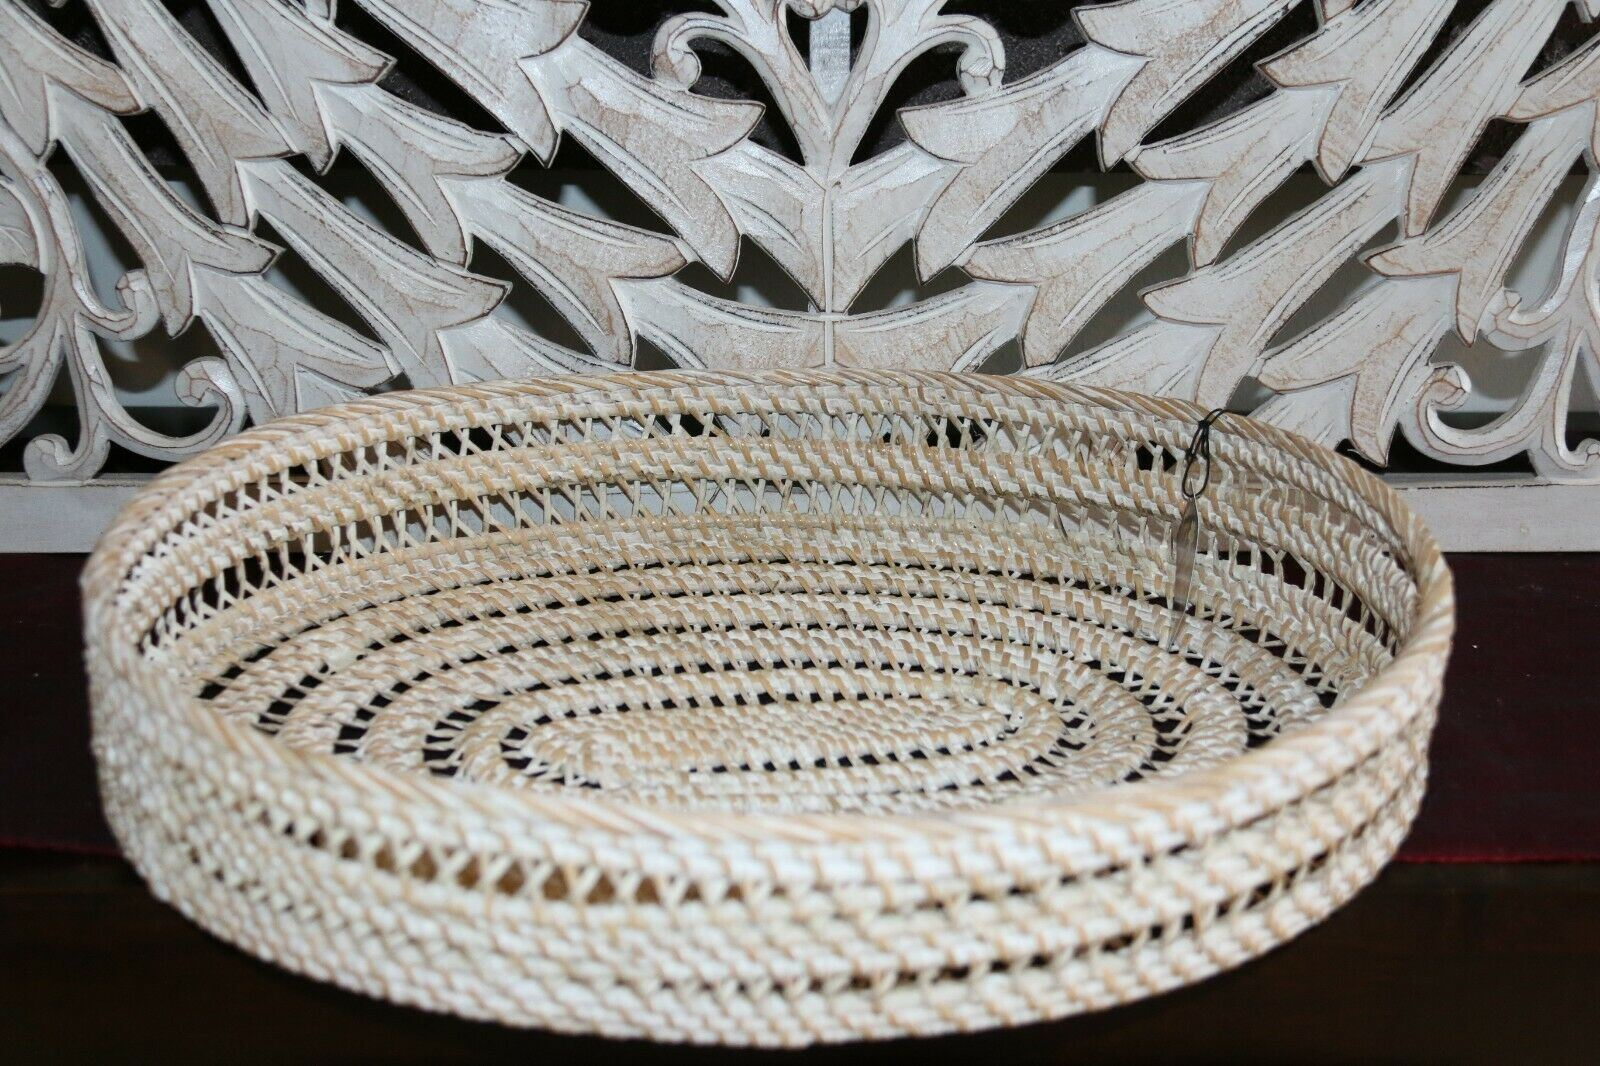 NEW Balinese Hand Woven White Washed Rattan Open Basket - 3 sizes available.